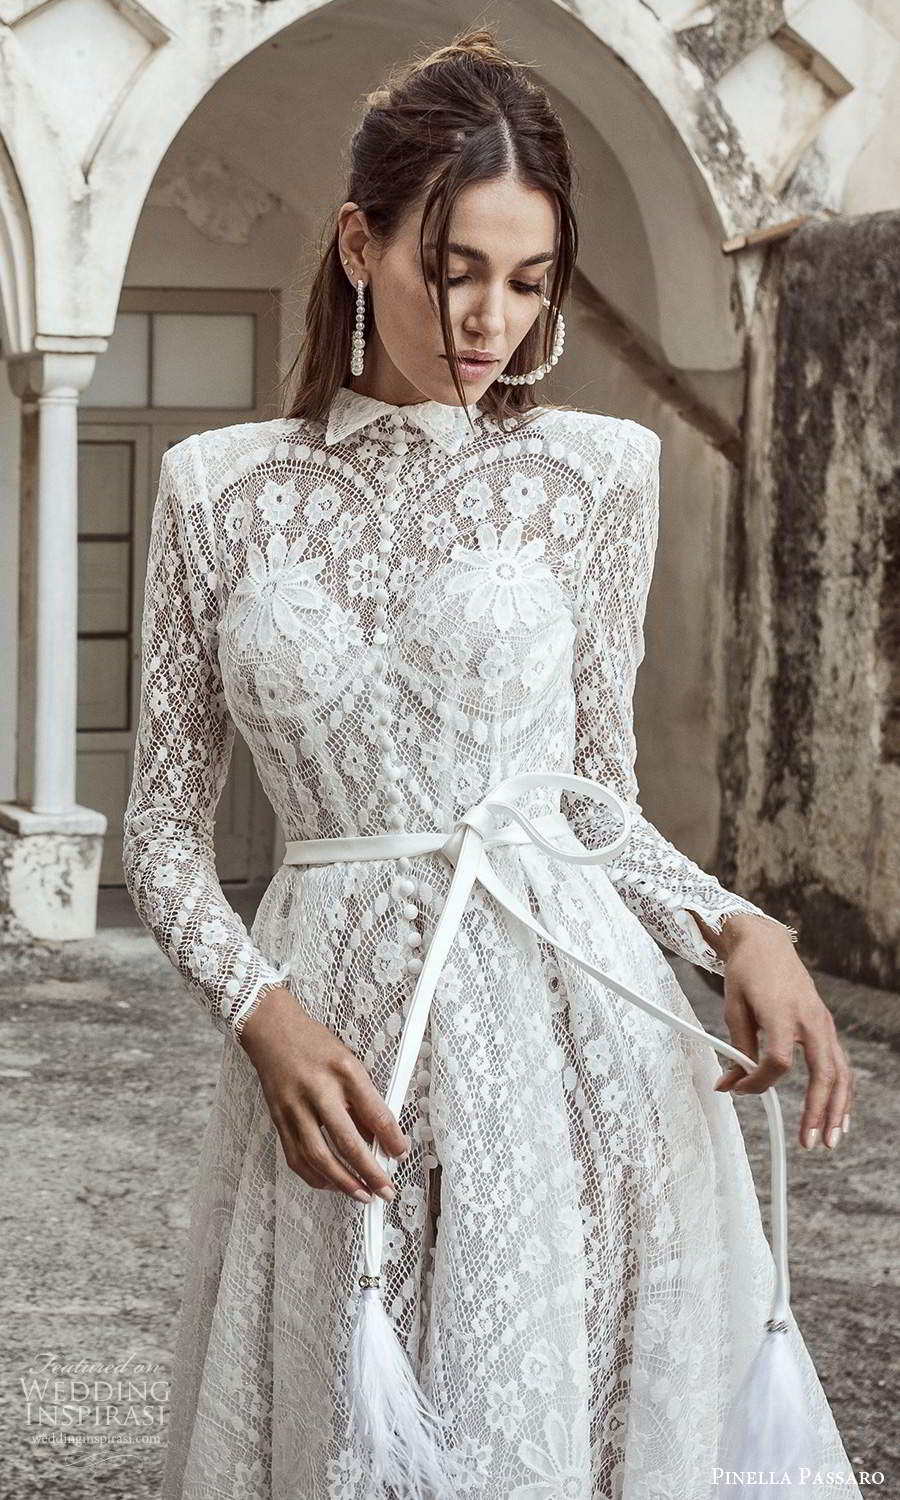 pinella passaro 2021 bridal long sleeves collar neckline fully embellished lace a line wedding dress chapel train (4) zv